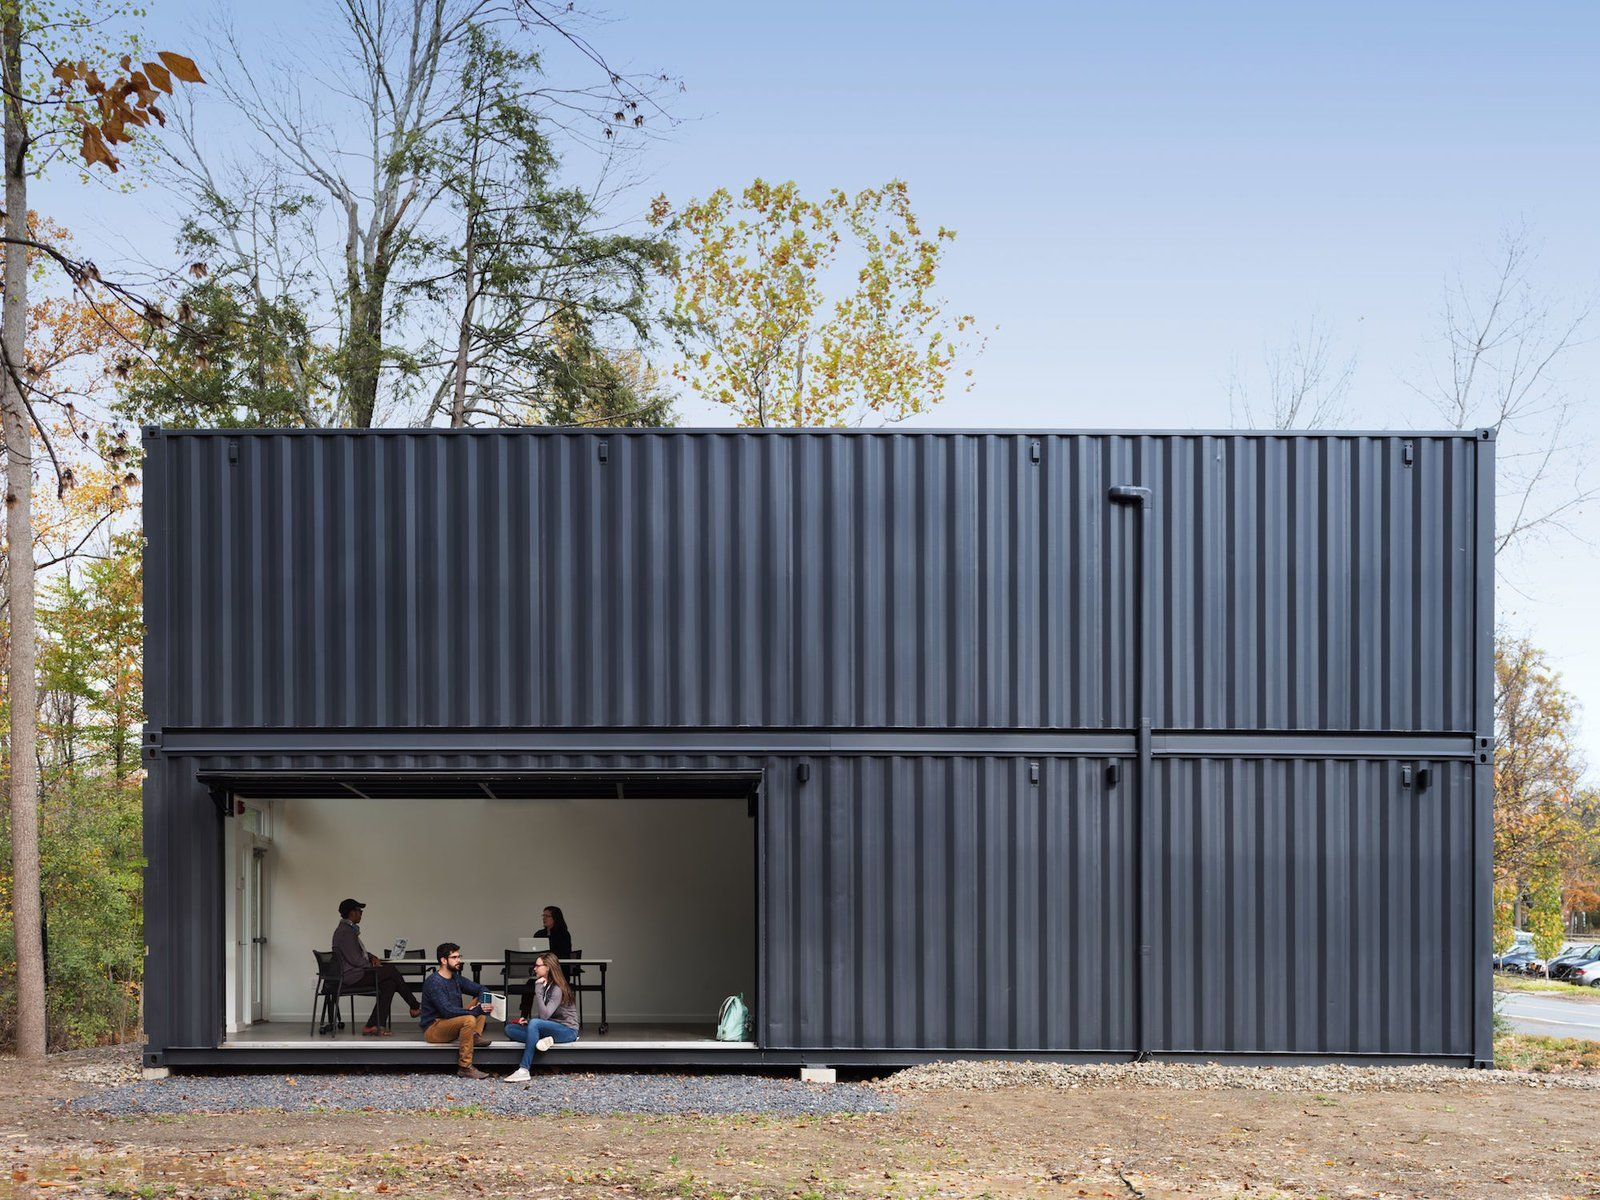 The Main Room Opens To The Quad Through A Large Pivoting Garage Door Tagged Exterior Shipping Contai Architecture Container House Container Architecture